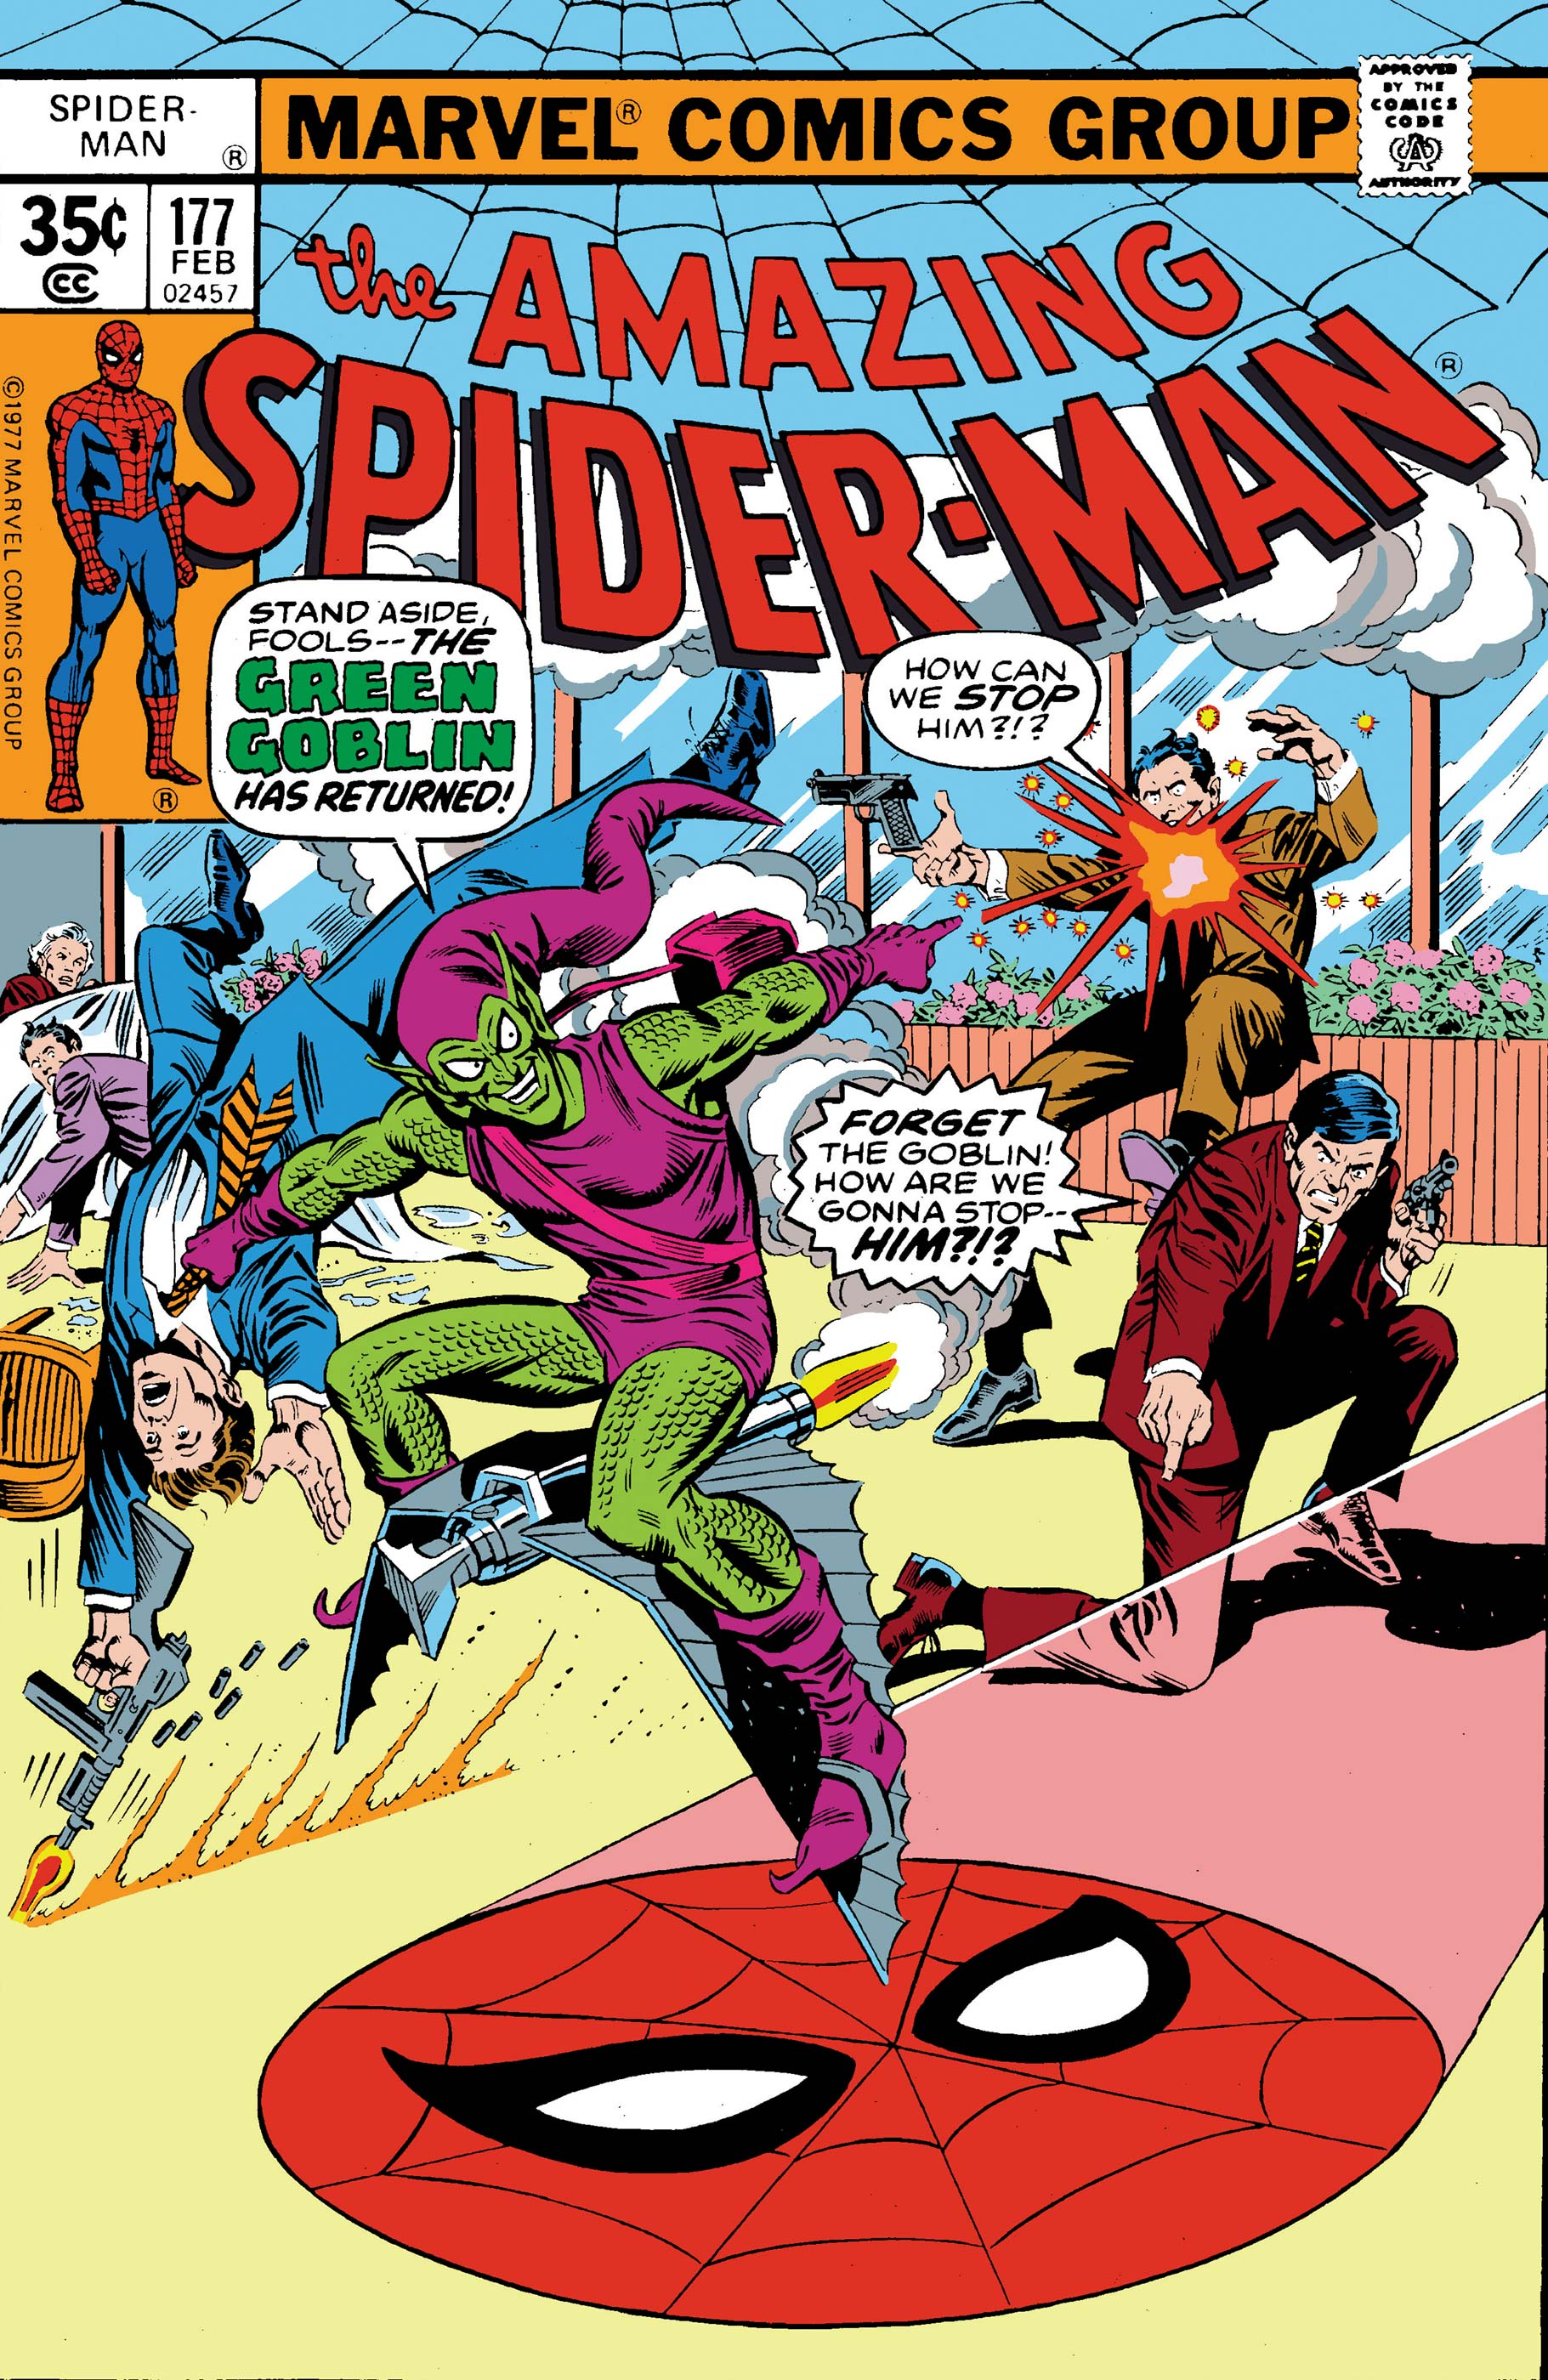 The Amazing Spider-Man (1963) #177